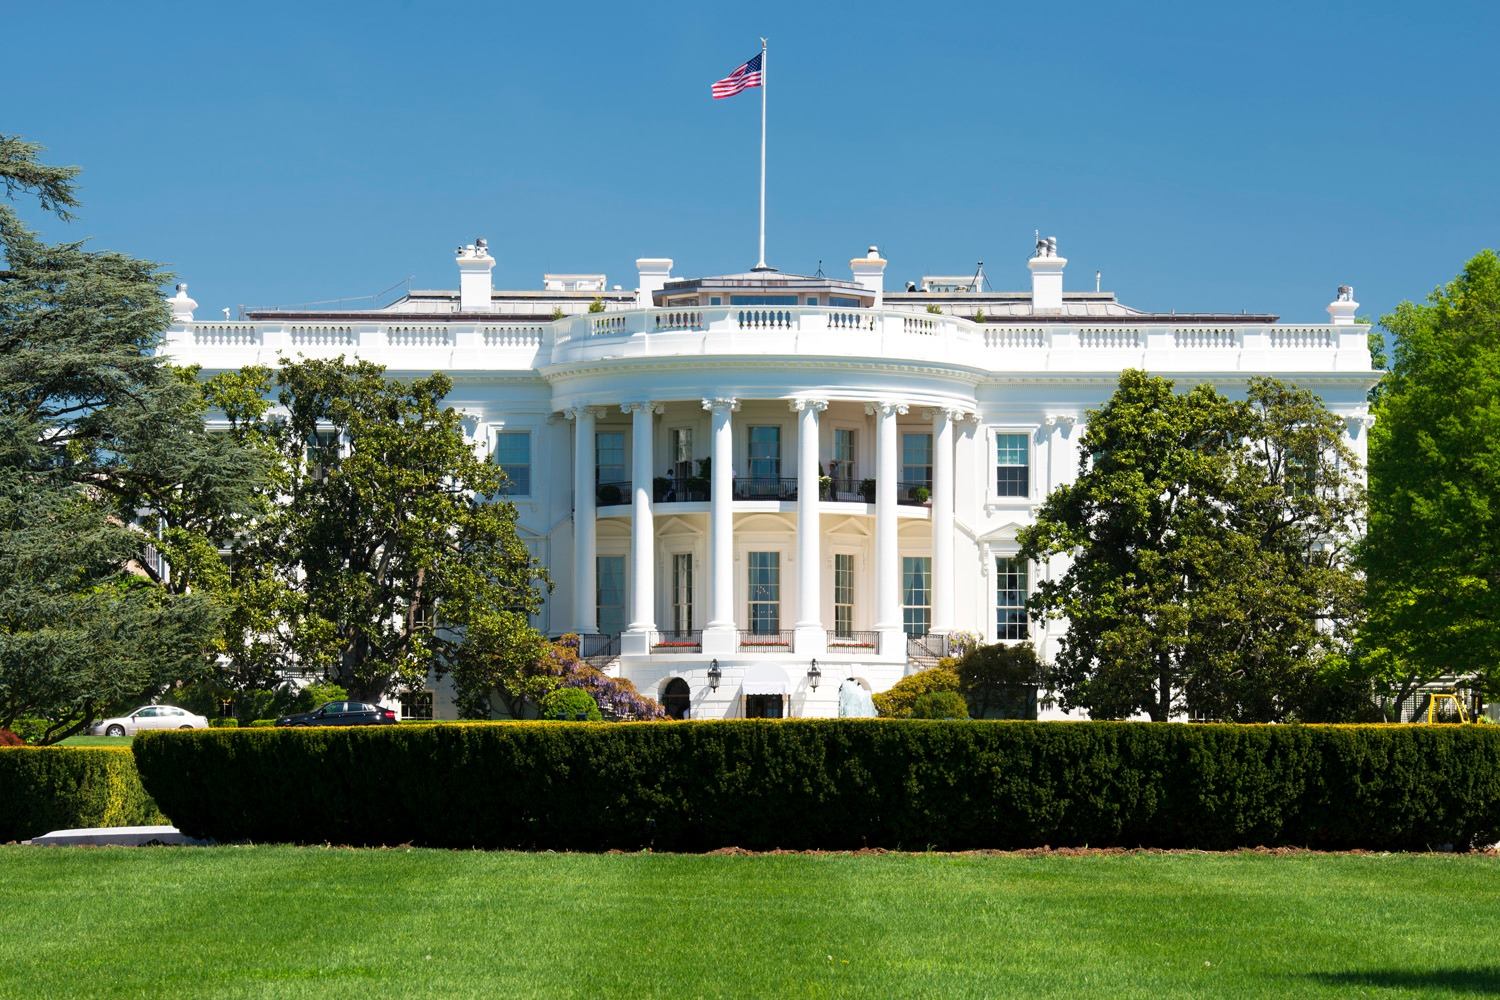 Mystery of the 'slow-moving blob' that put the White House in lockdown